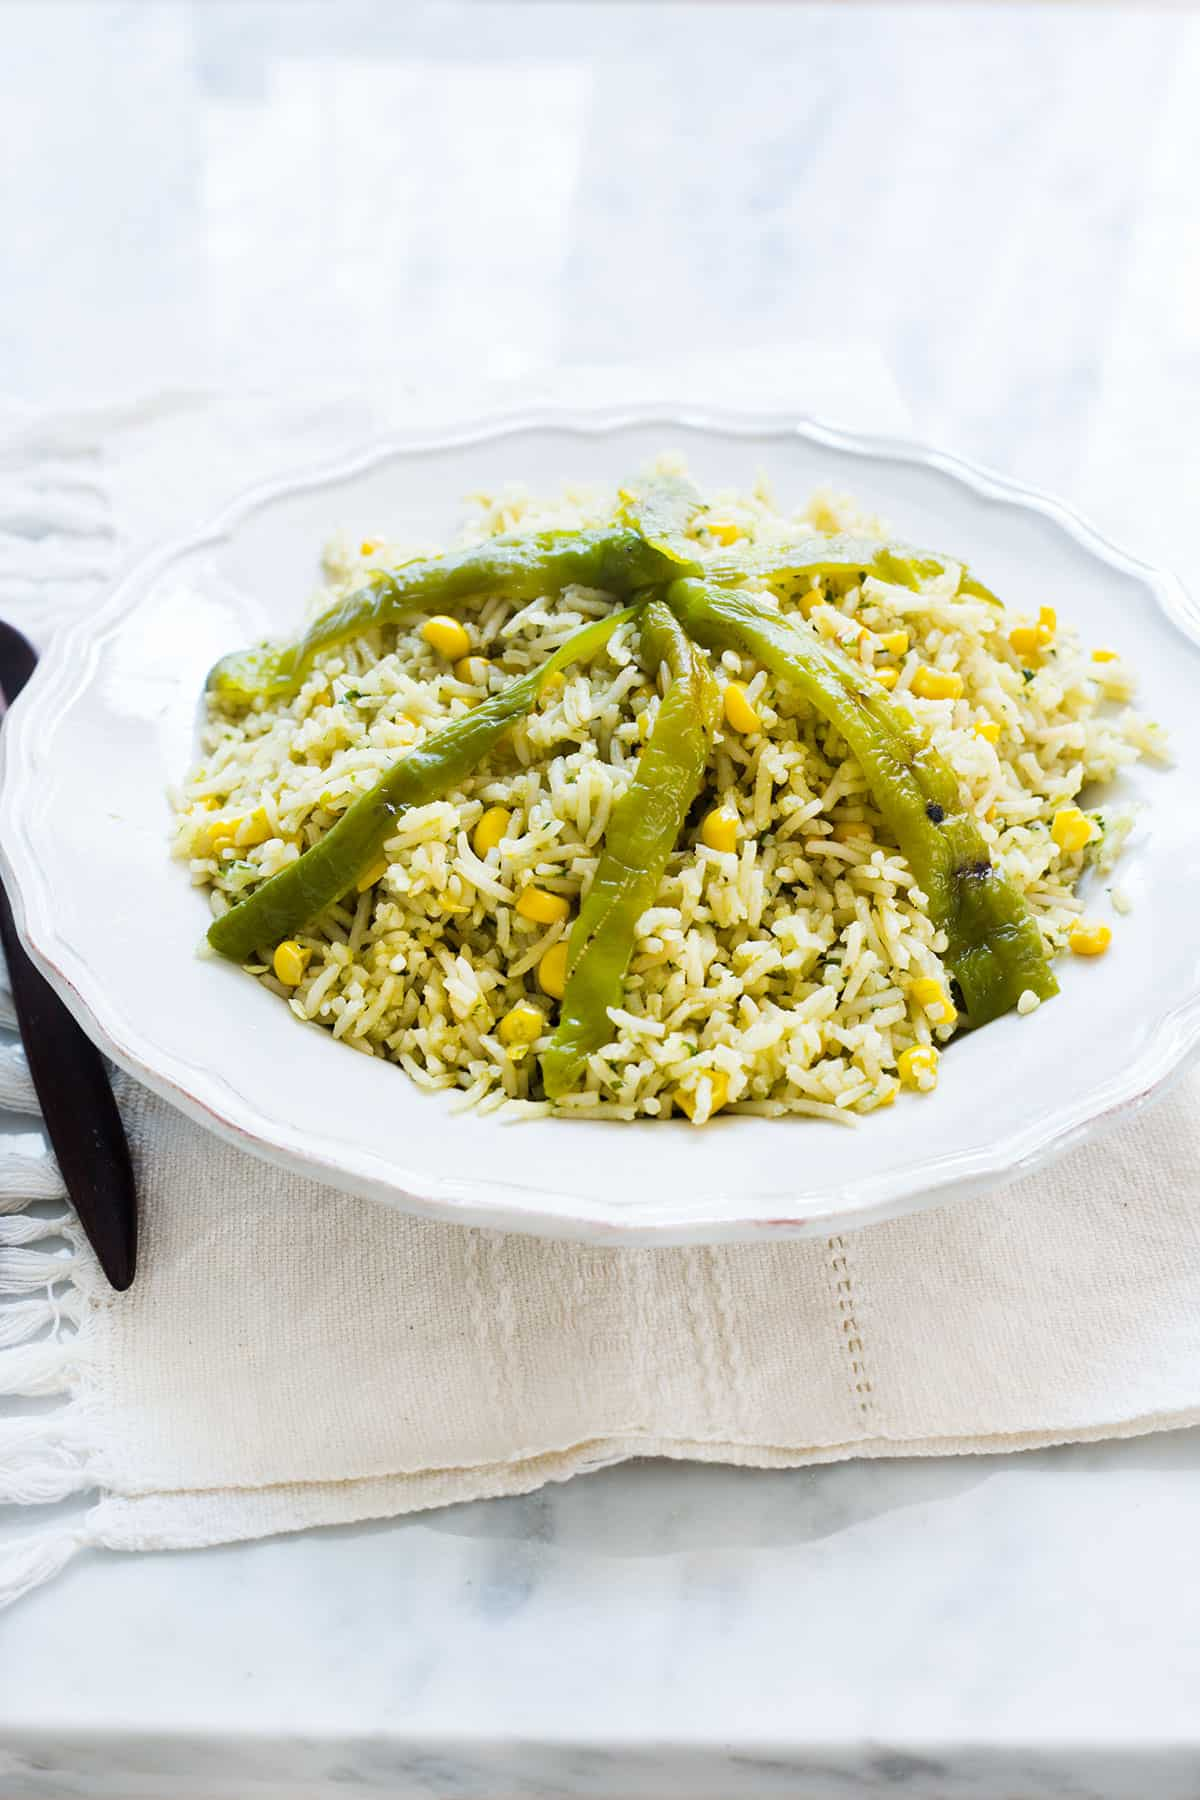 Mexican green rice (arroz verde) topped with poblano peppers strips.